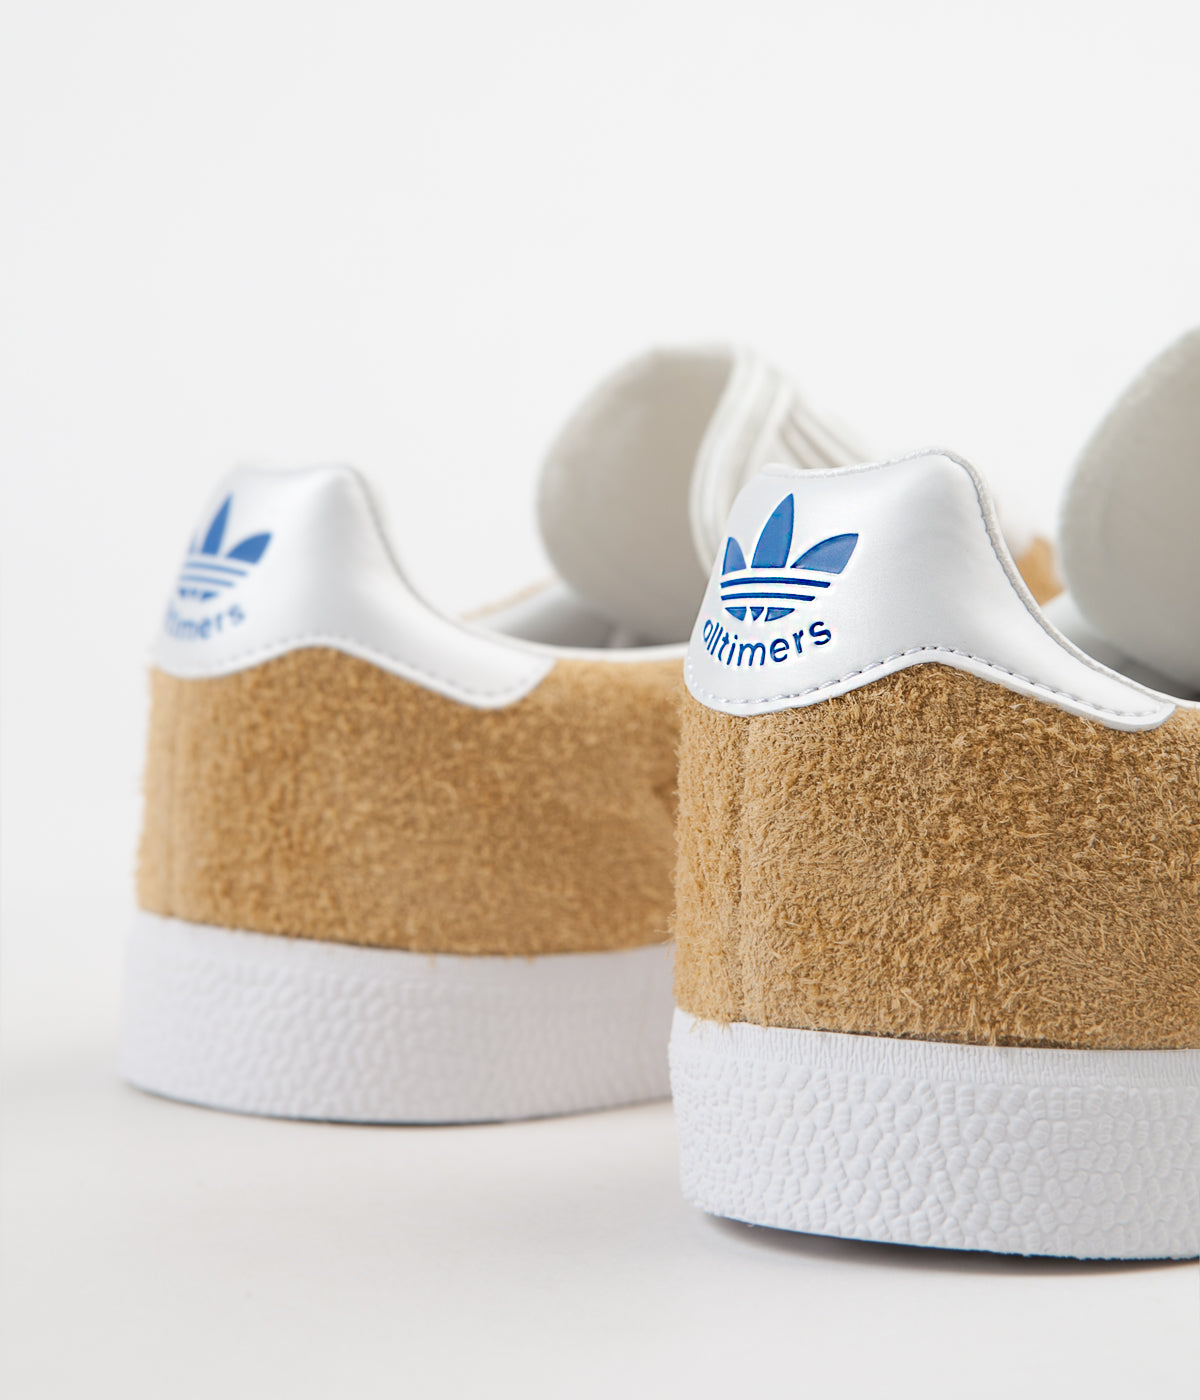 sports shoes 6c20c a8553 ... Adidas x Alltimers Gazelle Super Shoes - Mesa   Chalk White   Blue ...